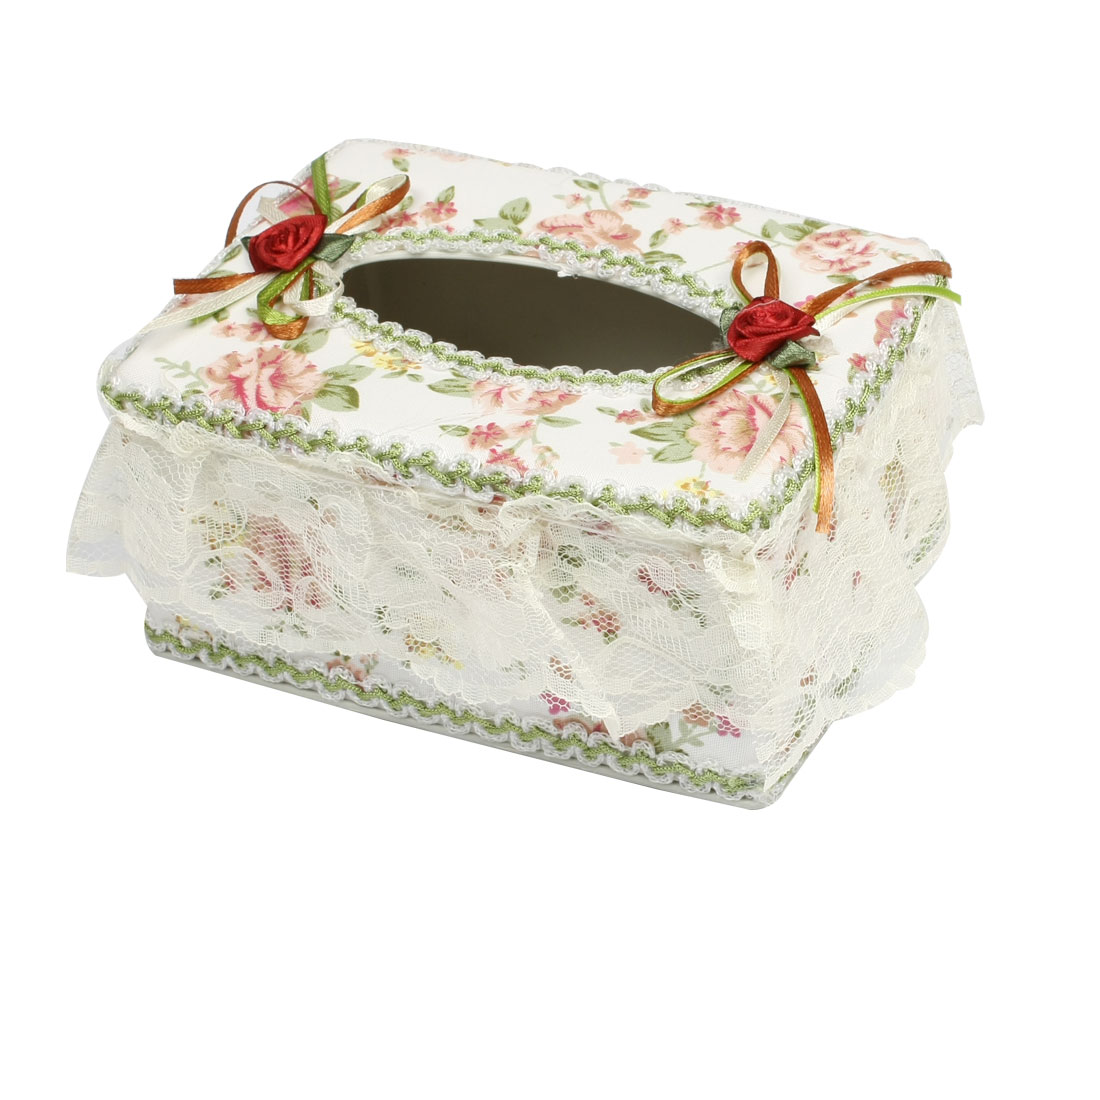 Home Office Lace Edged Floral Plastic Rectangular Tissue Box Holder Green White